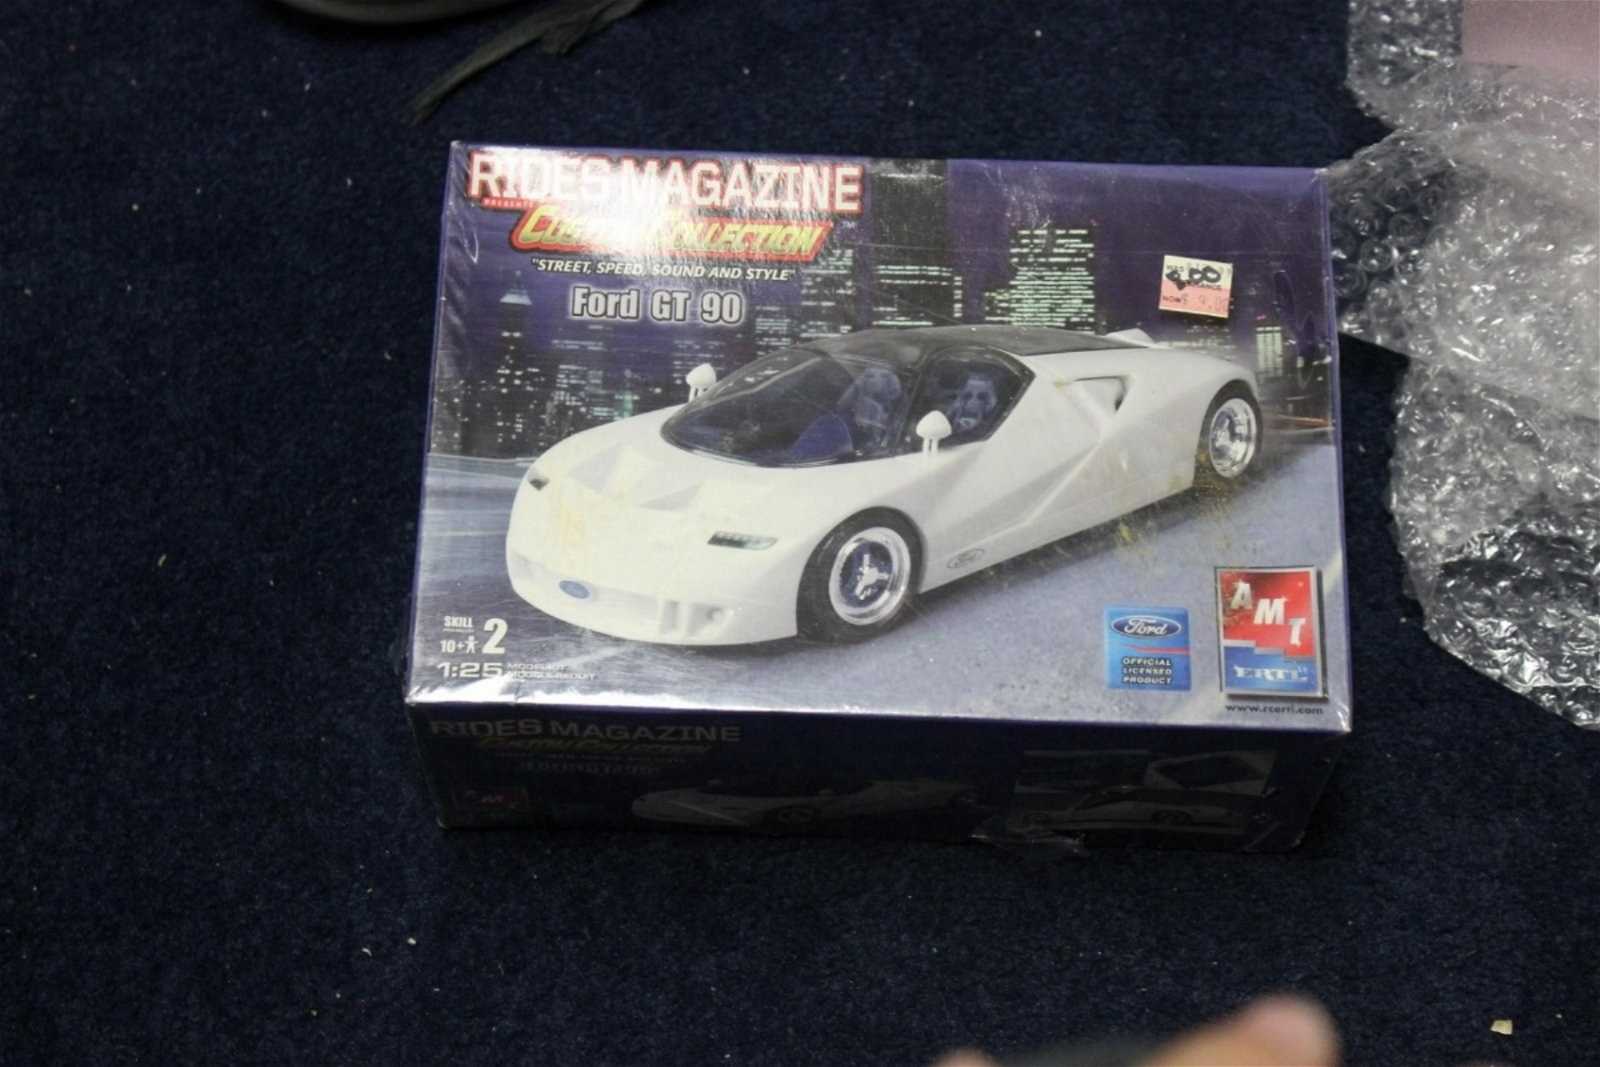 A Rides Magazine Custom Collection Ford GT90 Model